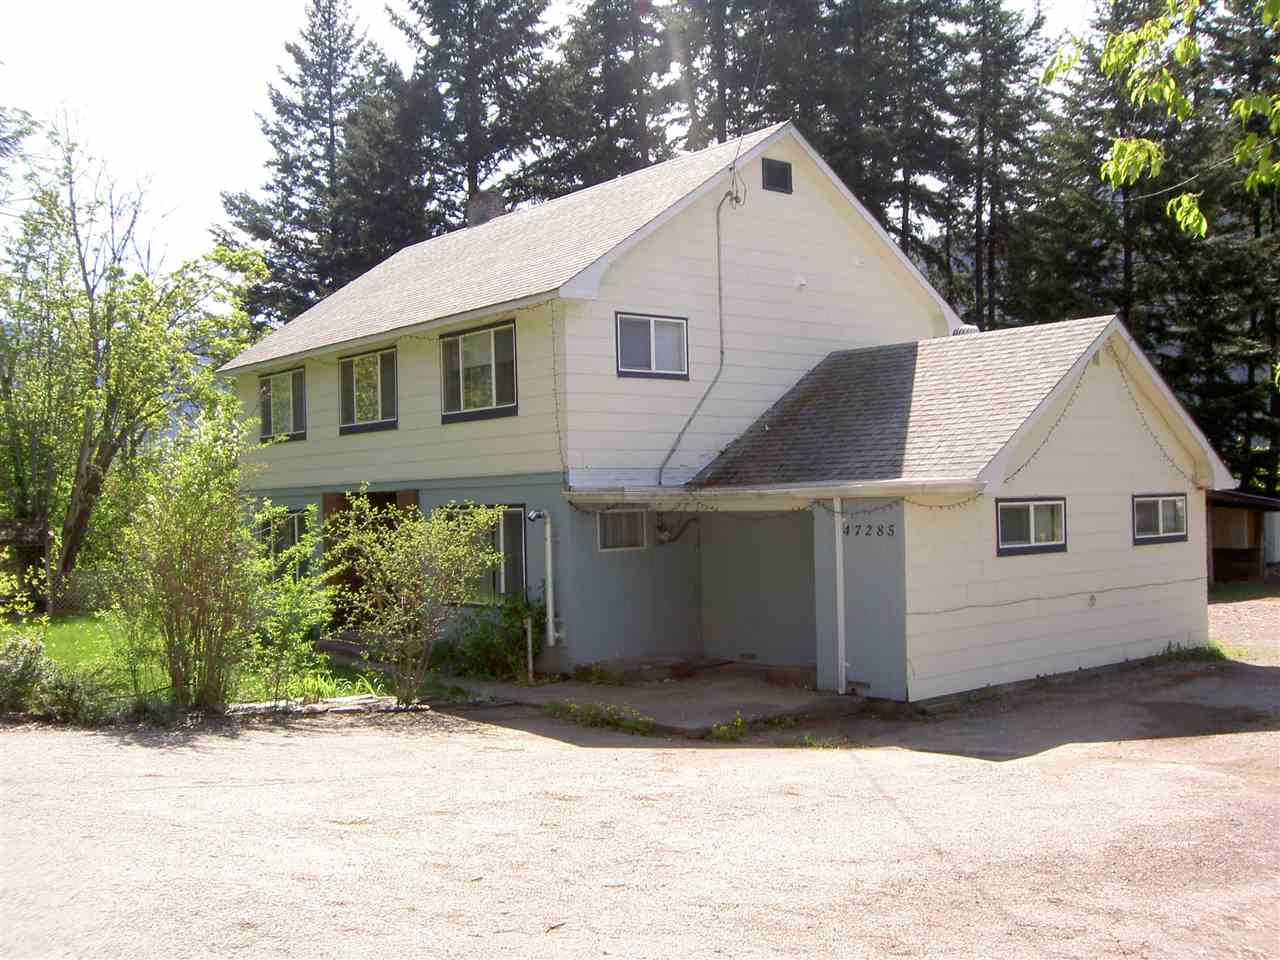 Main Photo: 47285 ASPEN Road in Boston Bar / Lytton: Boston Bar - Lytton House for sale (Hope)  : MLS® # R2065696